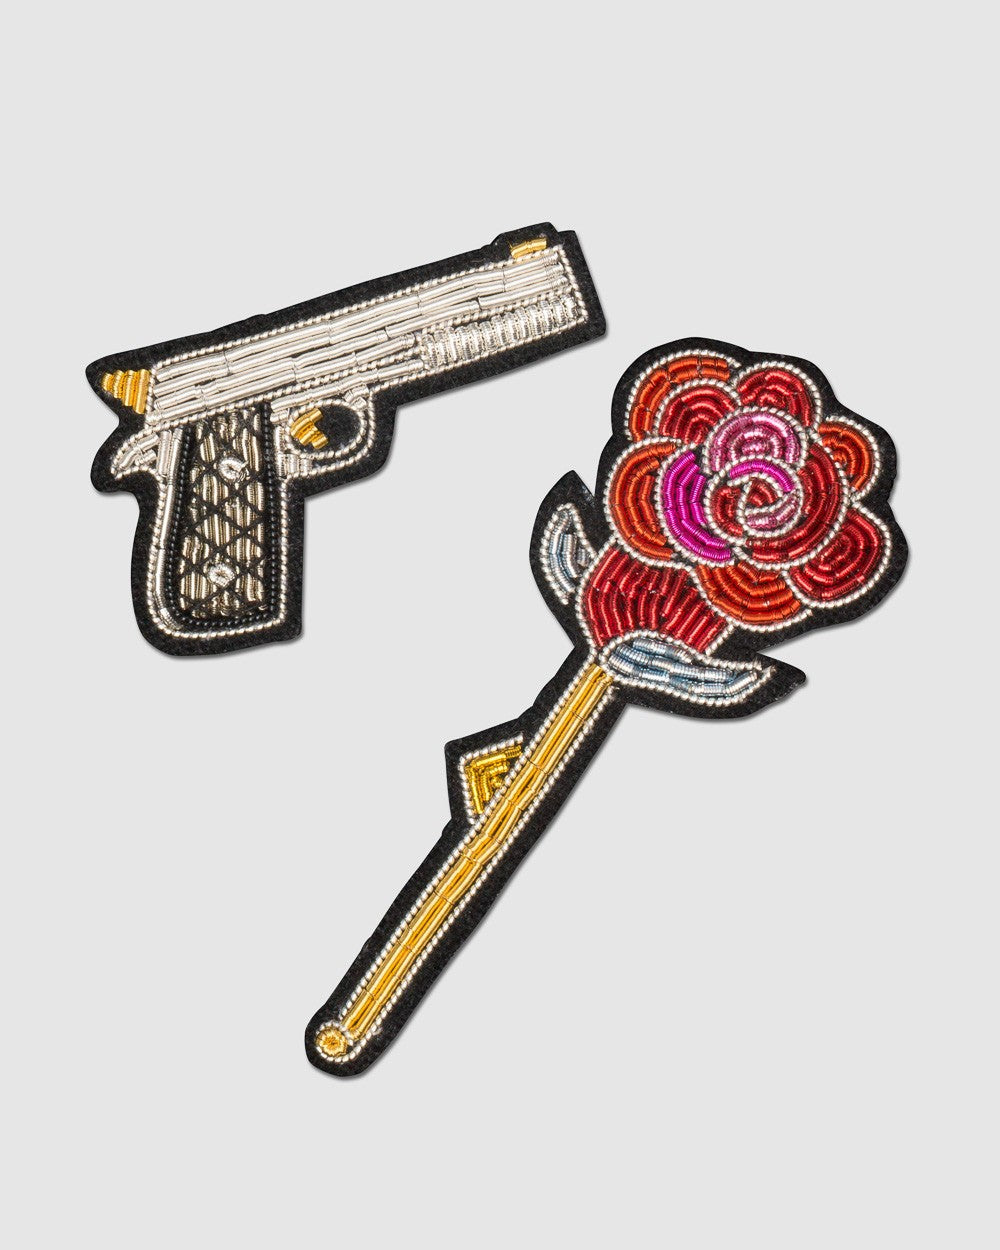 Macon Lesquoy Stickbroschen Set Of 2 Gun And Rose - Detail Image 2